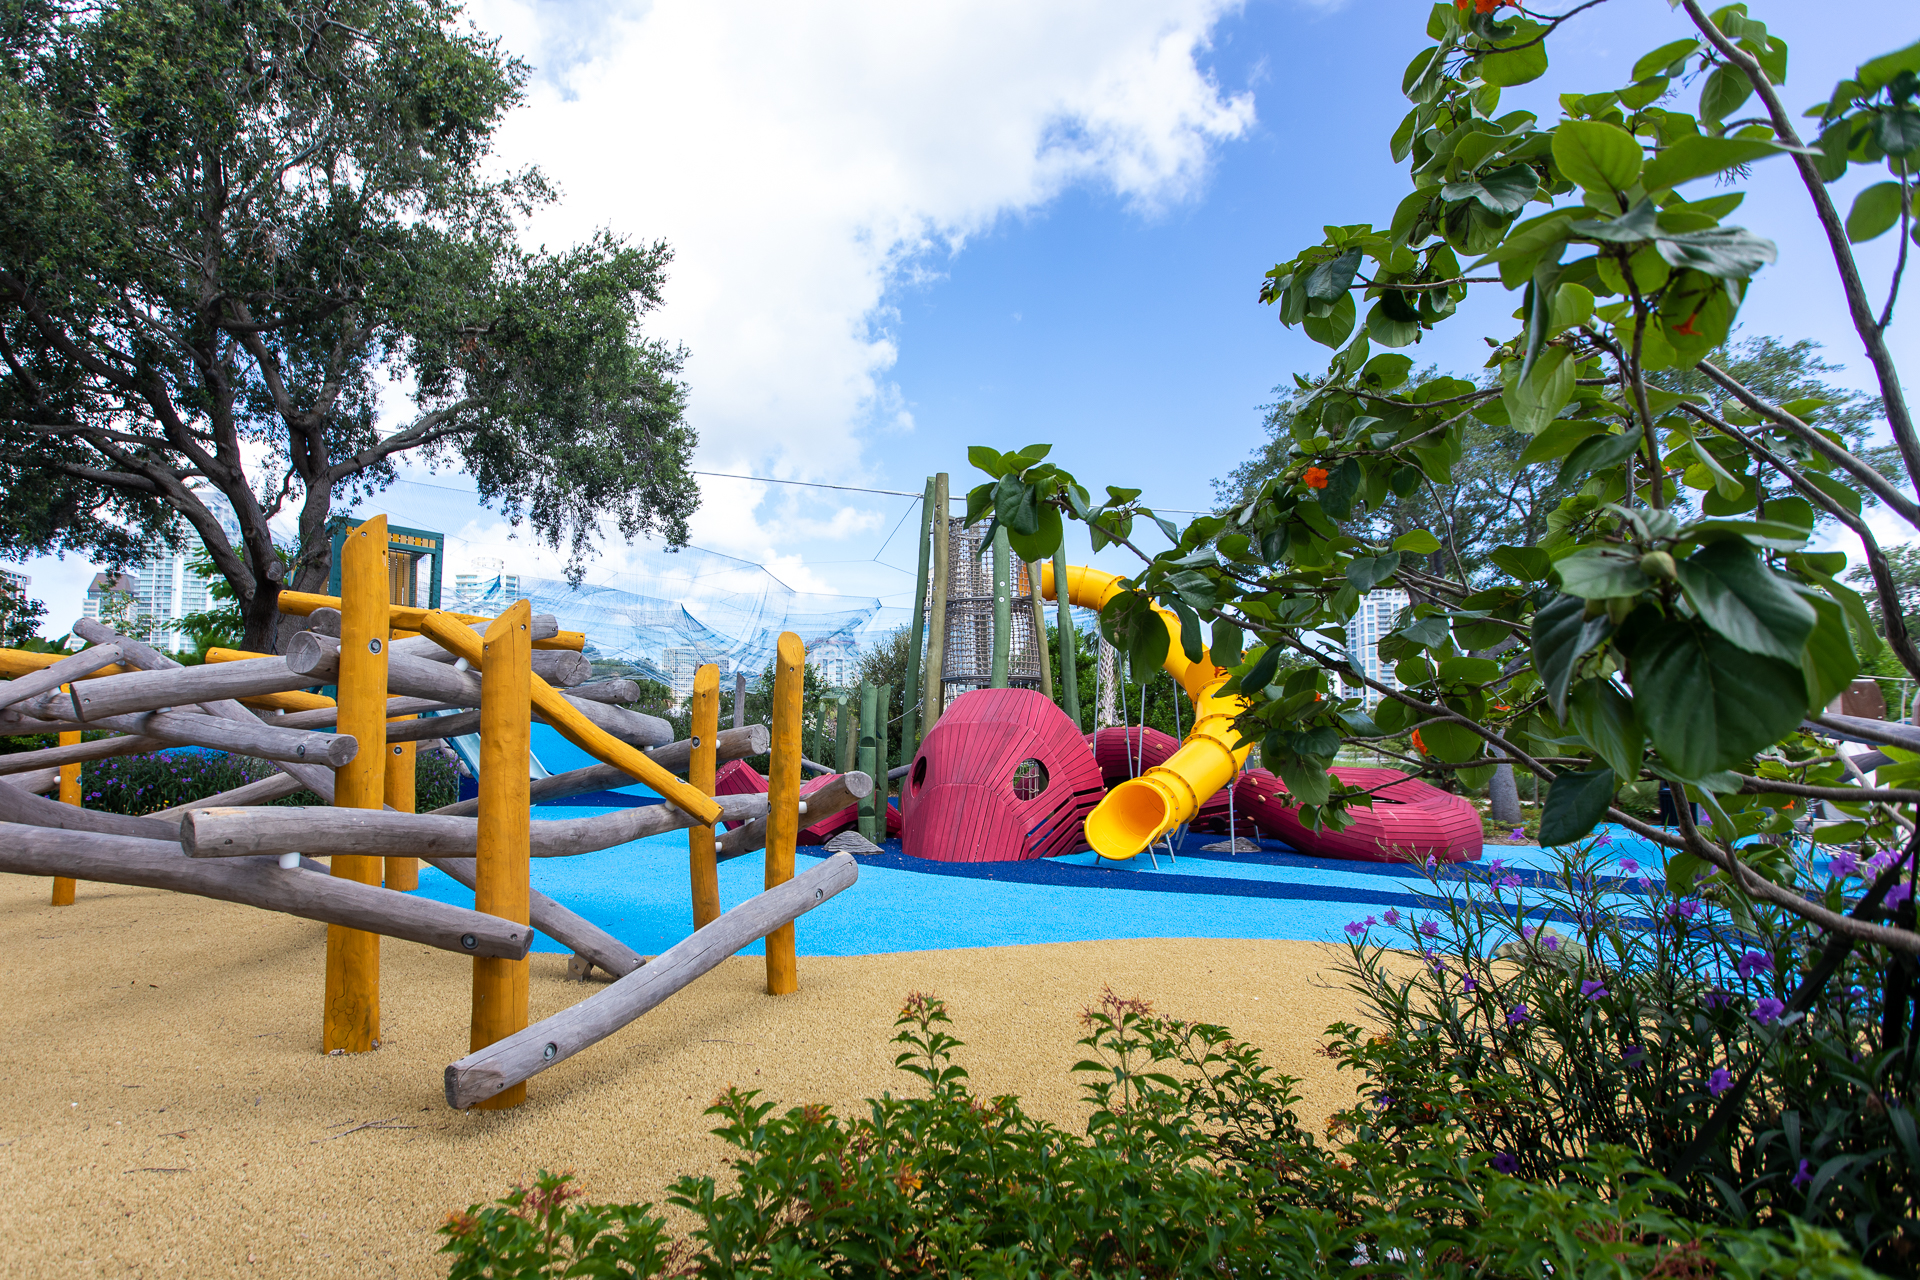 Photo of a waterfront playground with an octopus slide